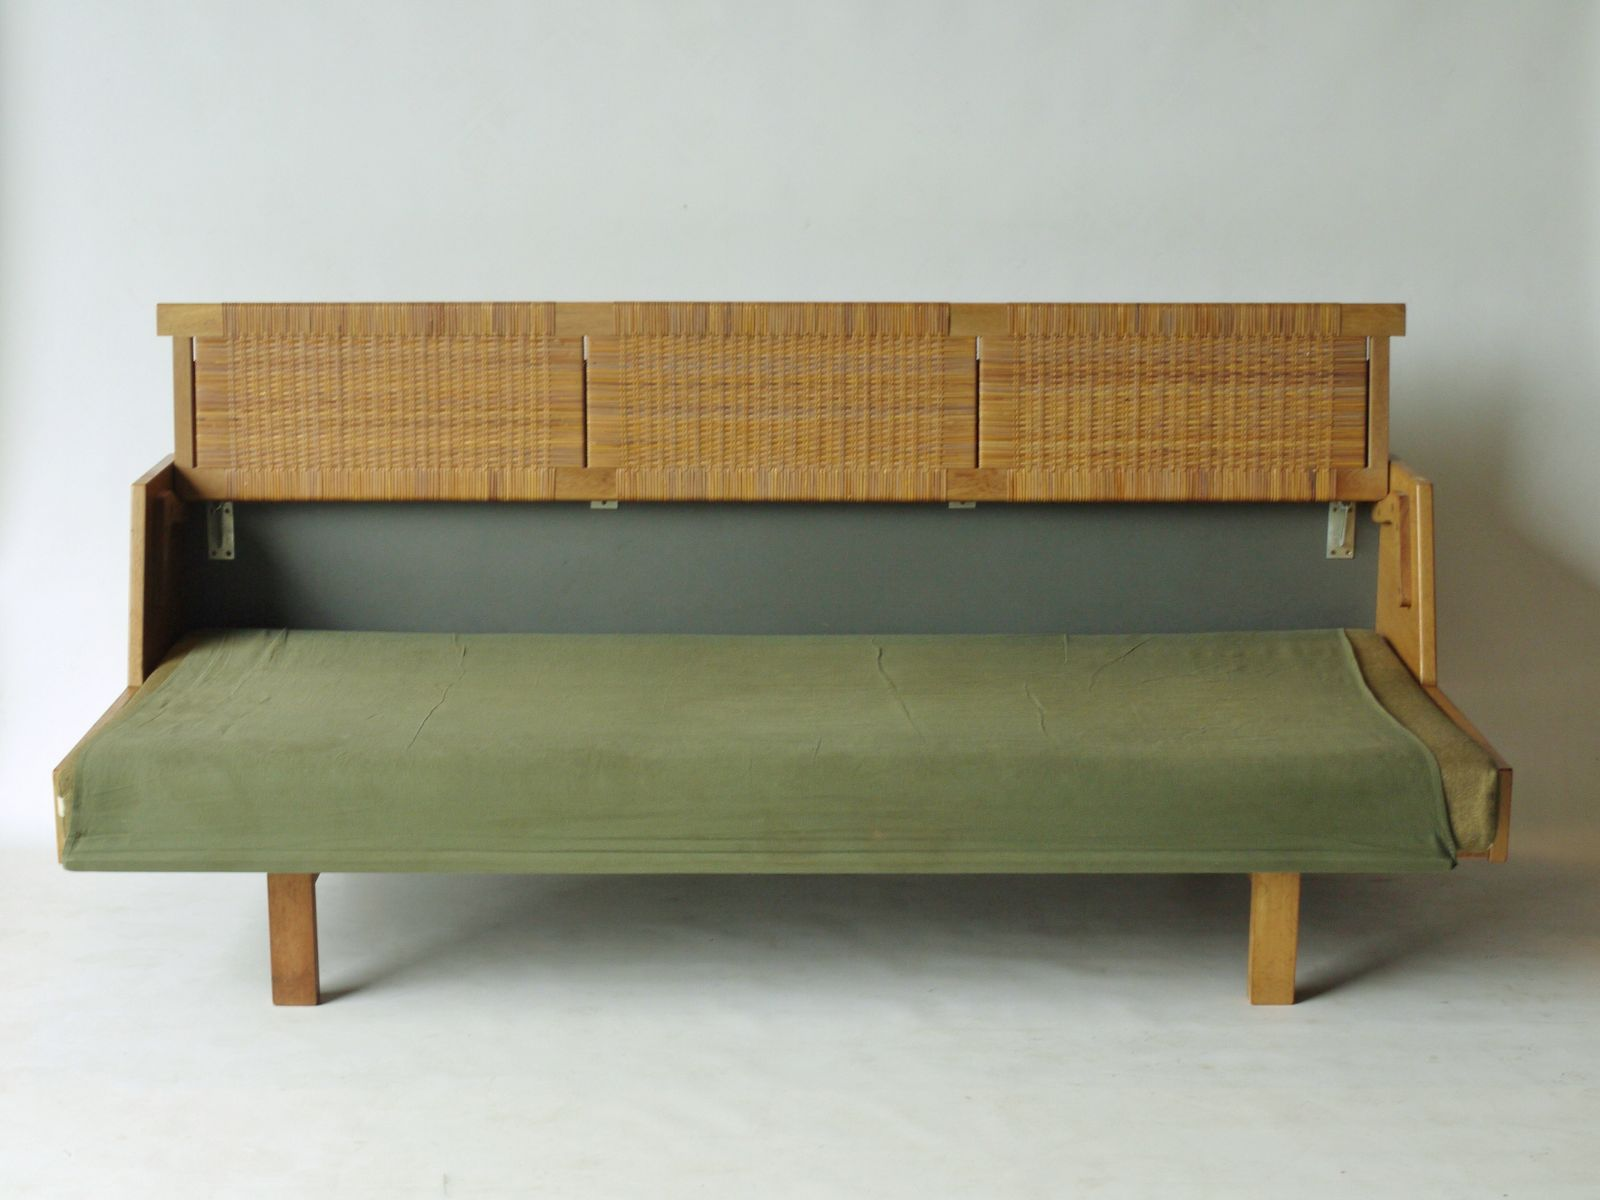 Ge 258 sofa bed by hans wegner for getama 1950s for sale for Sofa bed 50s